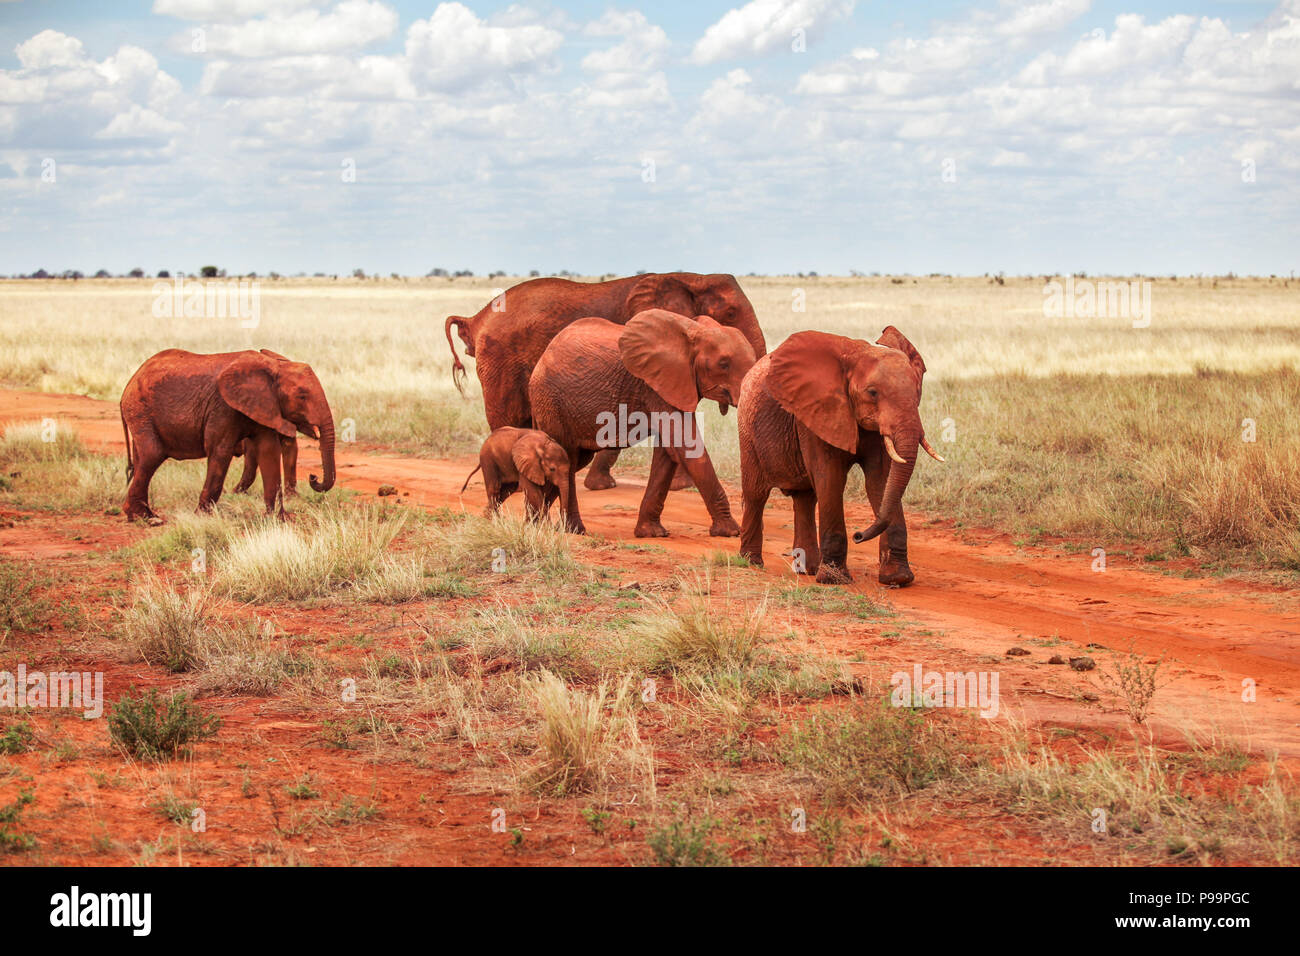 Group of African bush elephants (Loxodonta africana) red from dust, crossing the road during safari in Tsavo East national park, Kenya - Stock Image